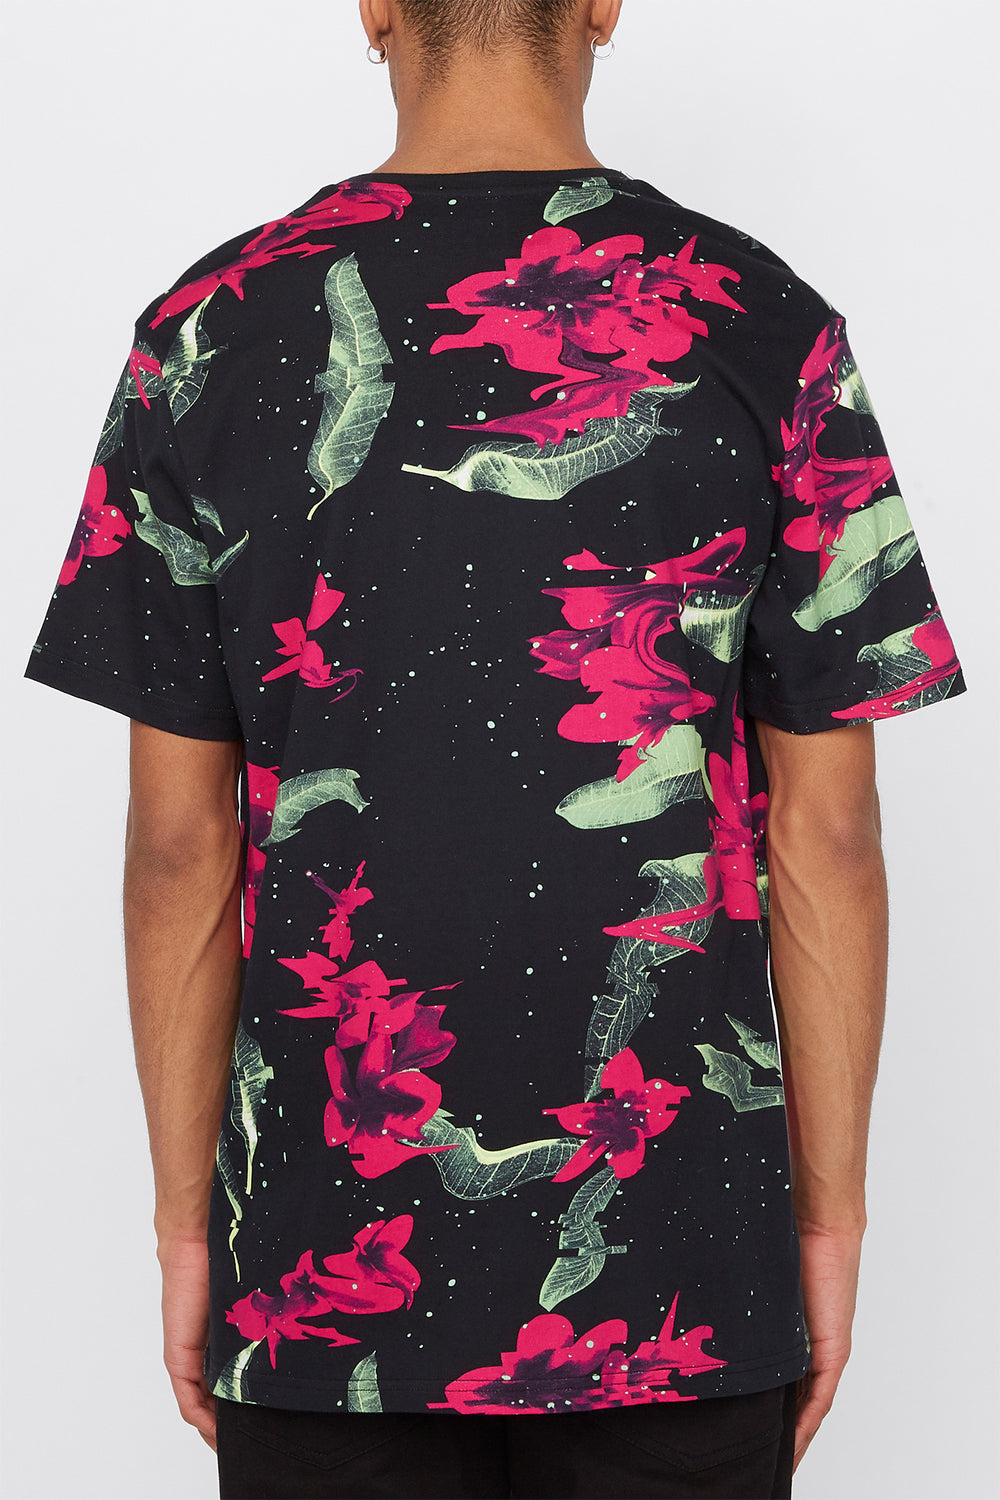 Young & Reckless Mens Neon Floral Print T-Shirt Black